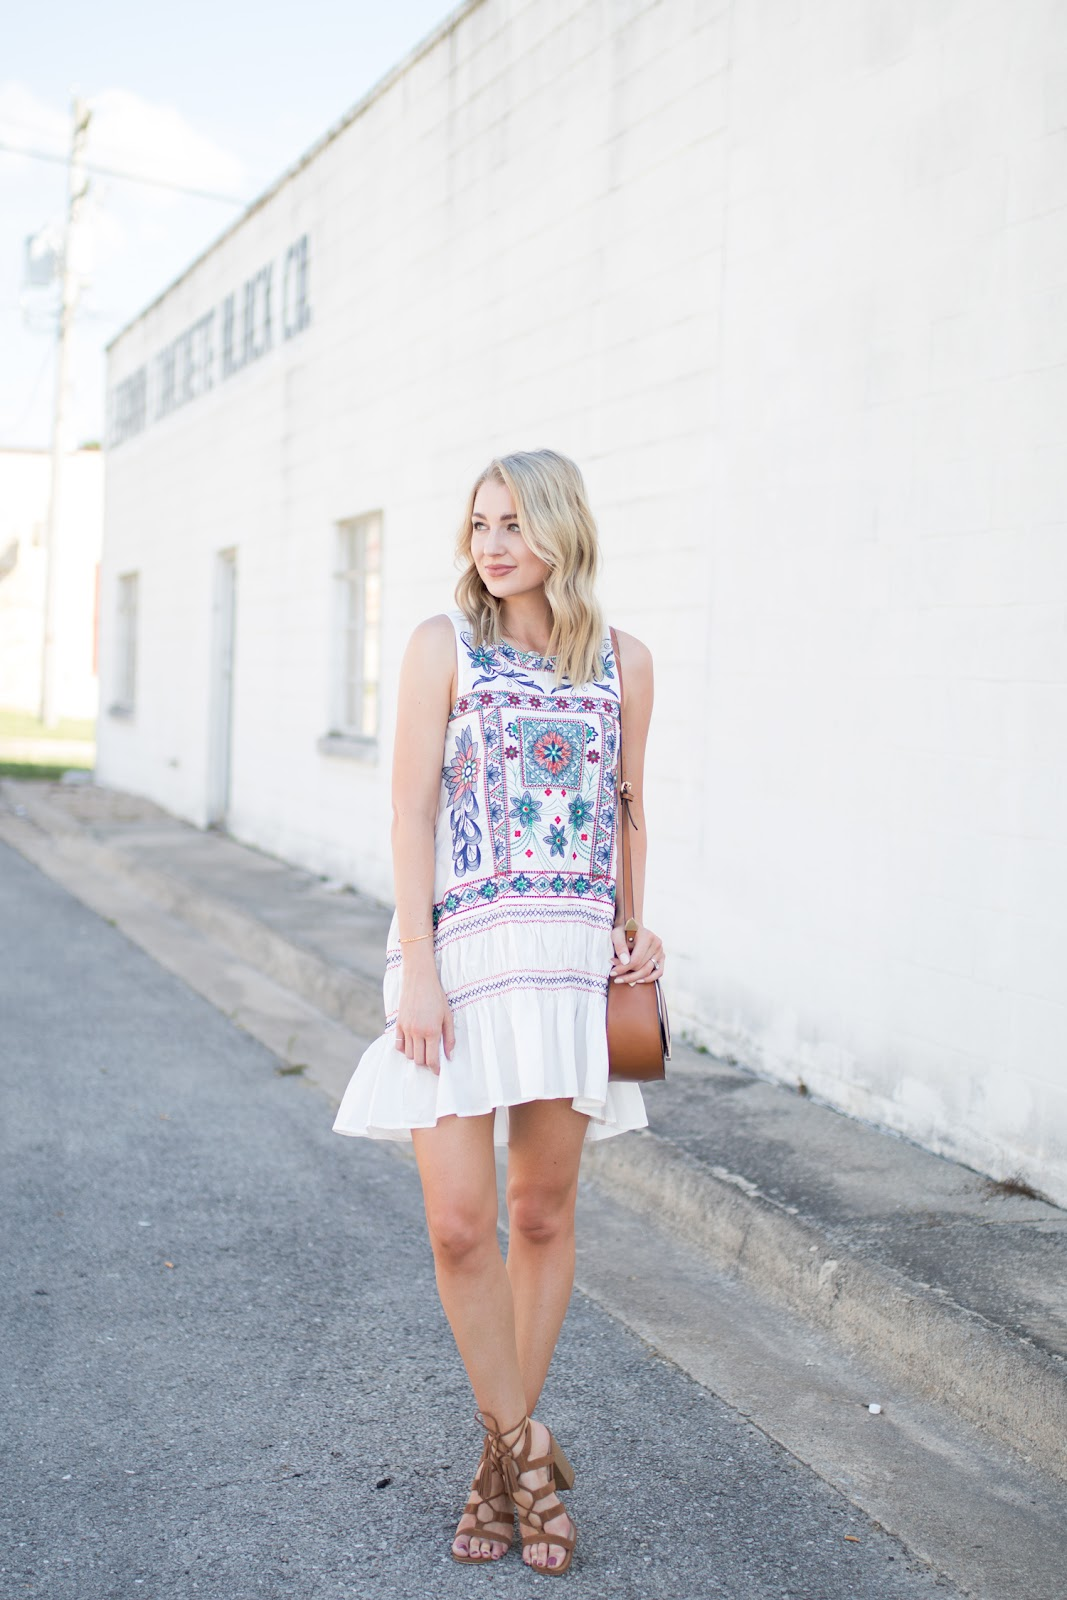 White sundress with embroidery